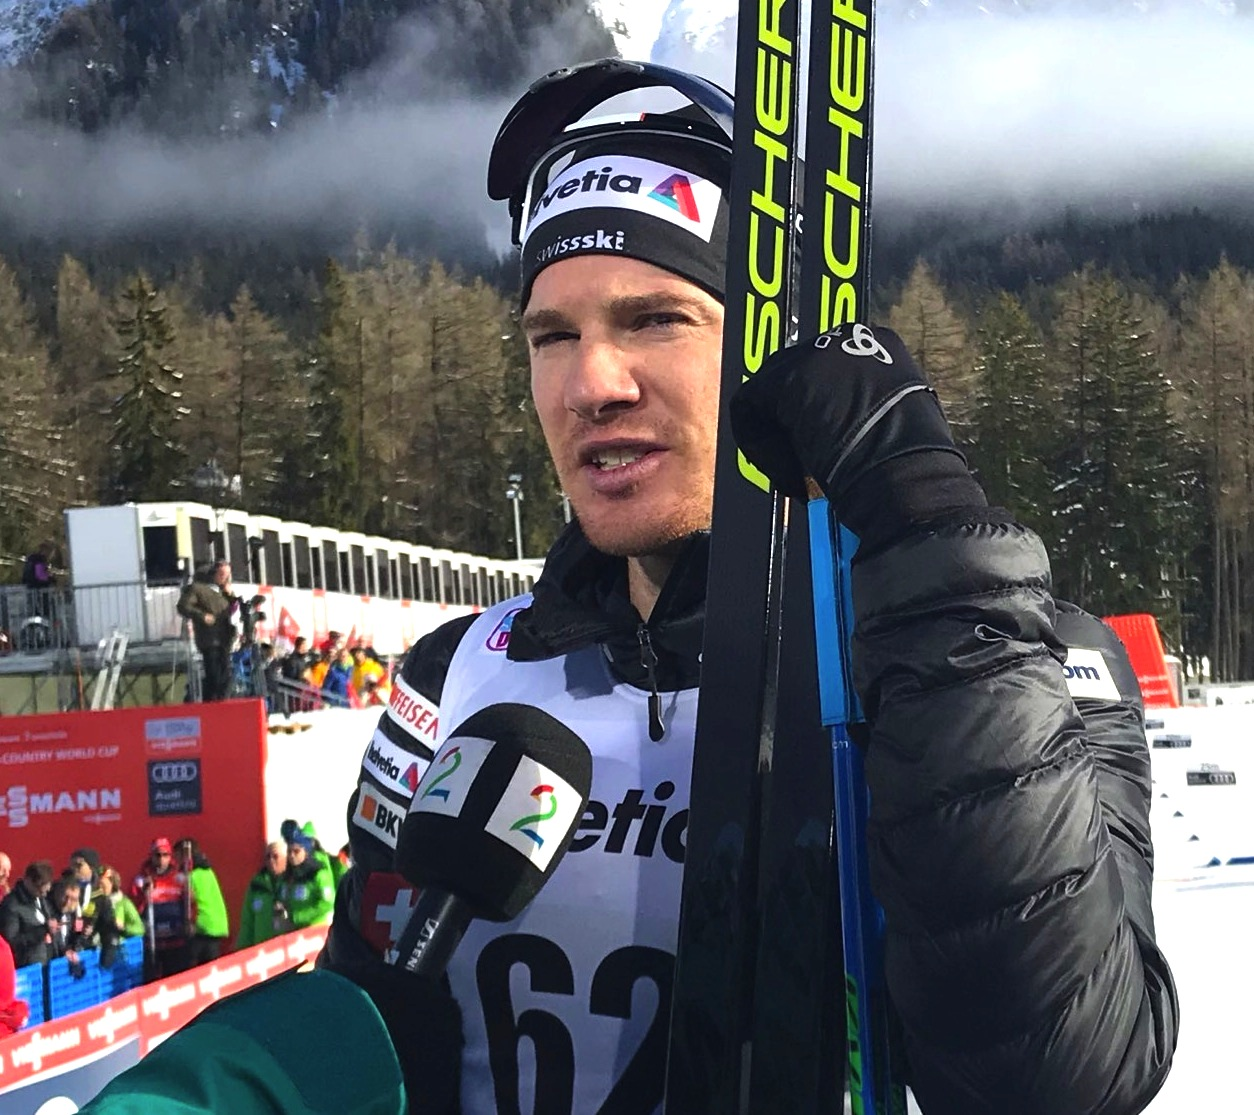 Canada S Harvey 20th As Cologna Triumphs At Home In Men S 15k Cl On Stg 2 Tour De Ski Kershaw Out Skitrax